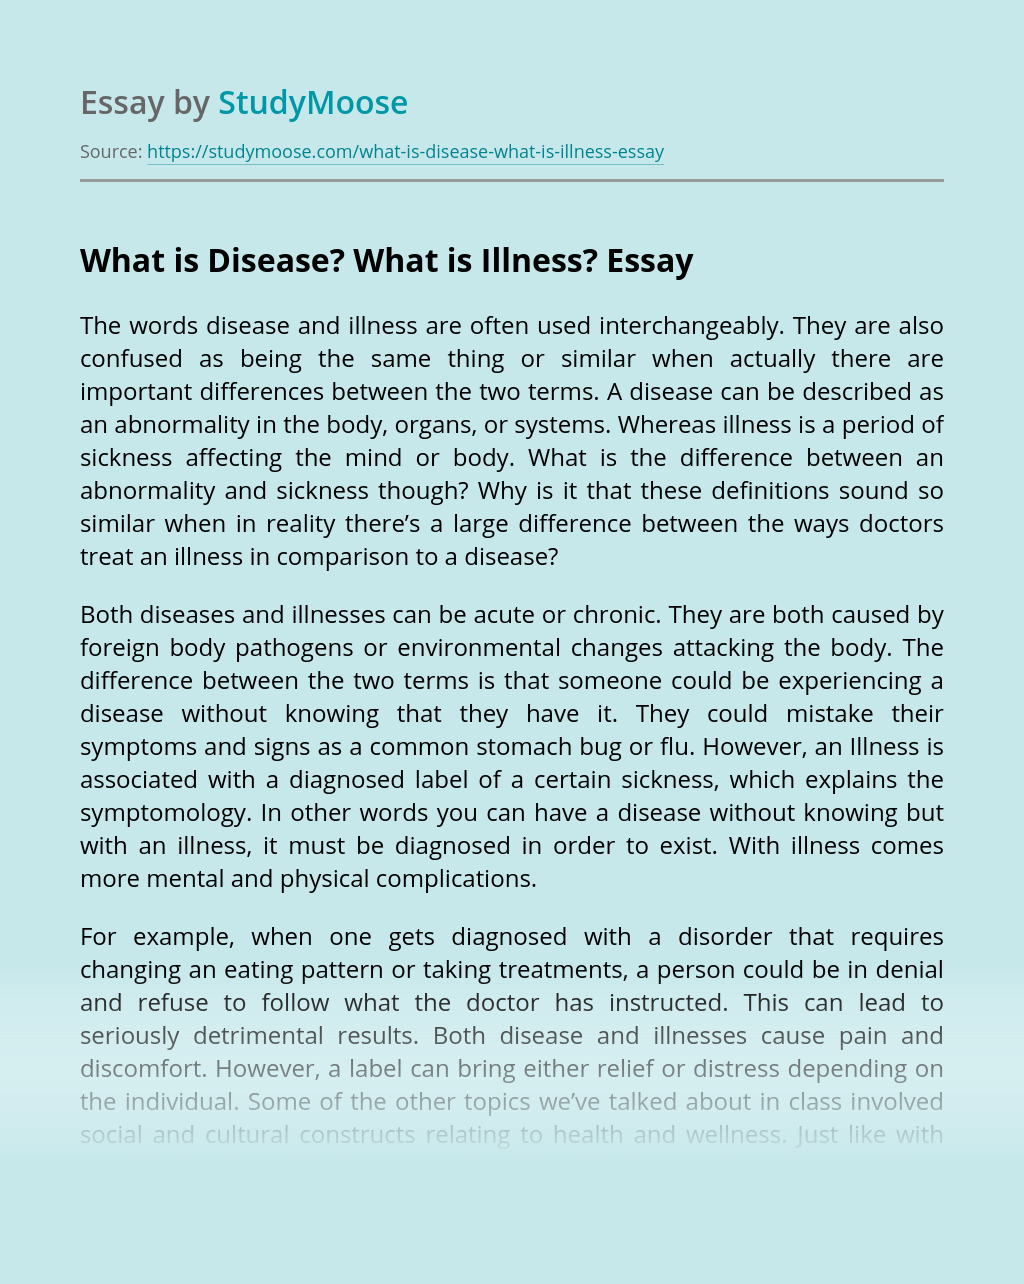 What is Disease? What is Illness?